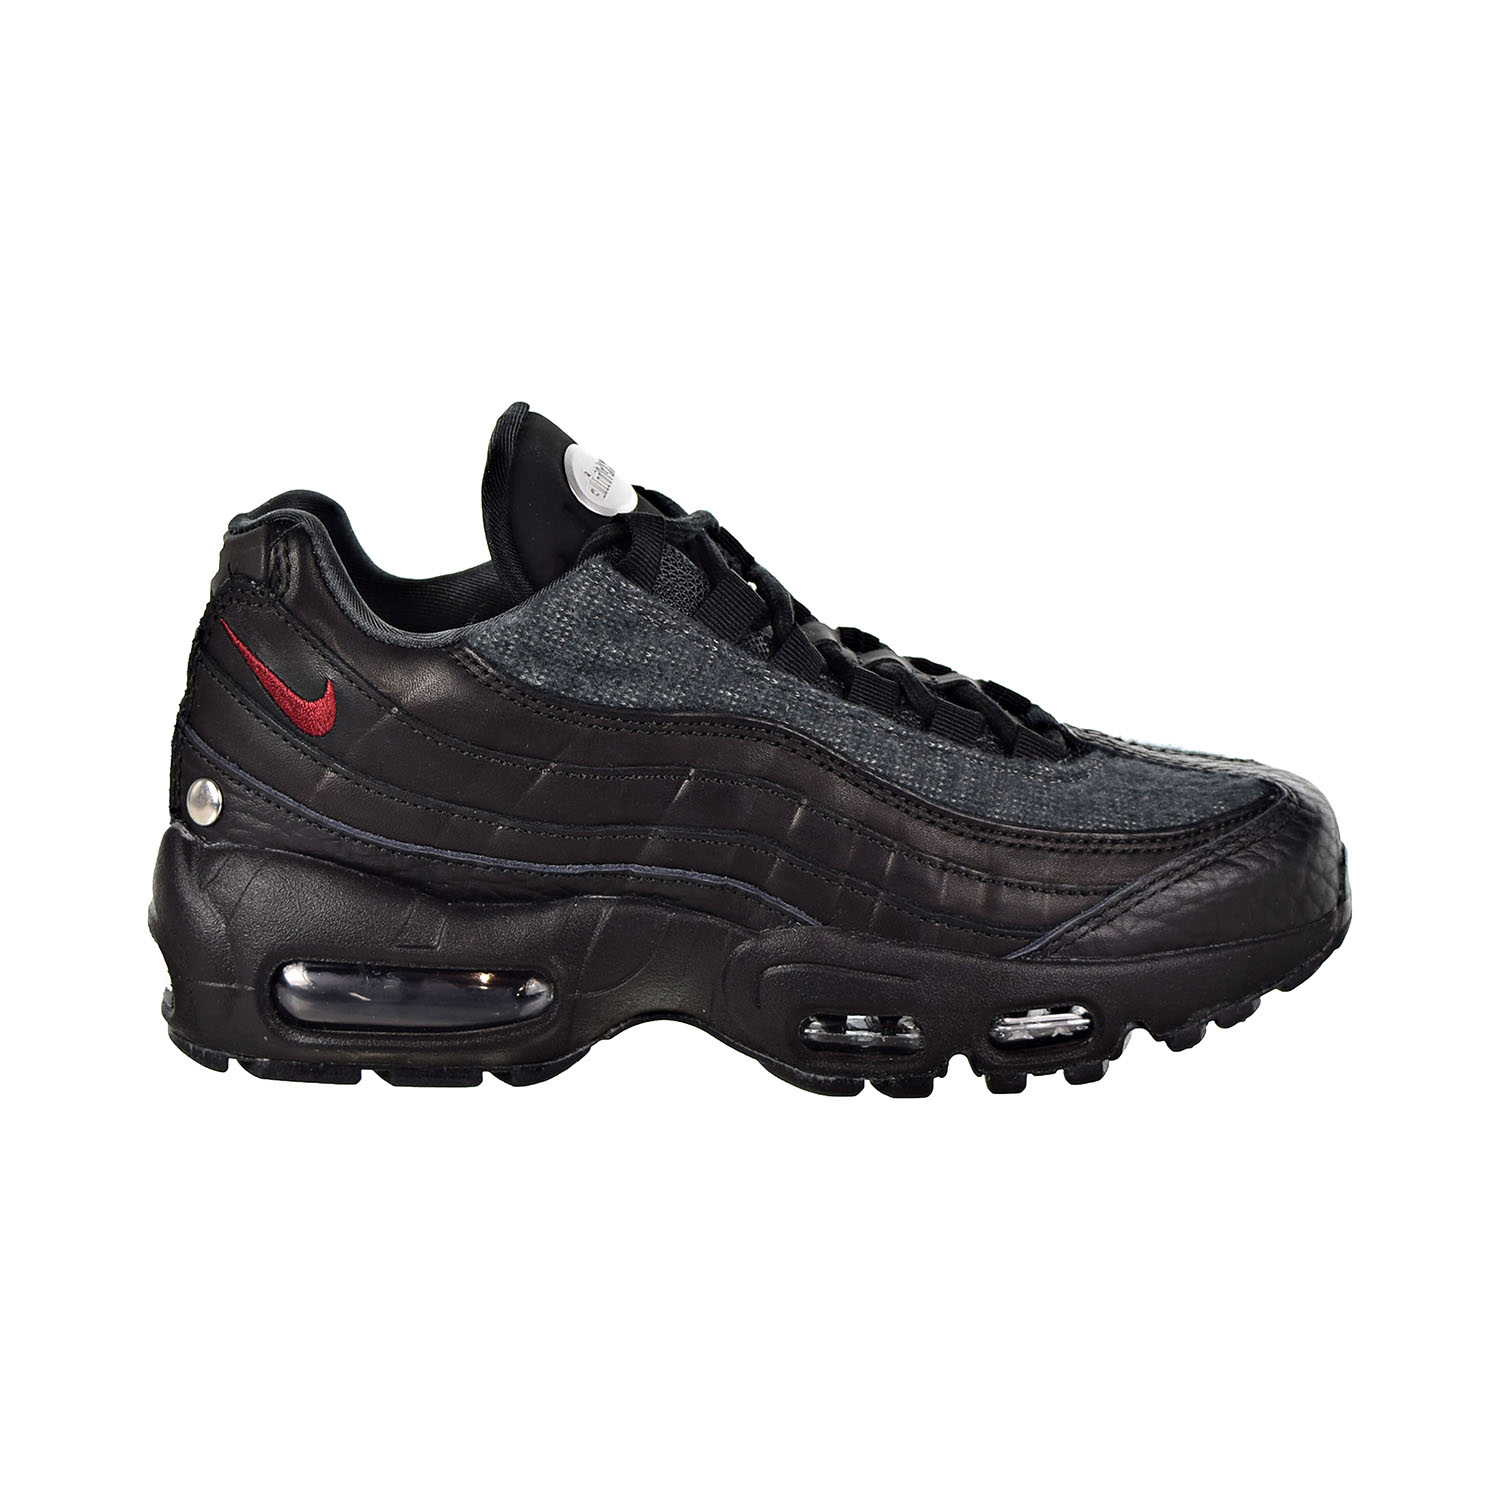 online retailer c0960 bfd98 Details about Nike Air Max 95 NRG Men s Shoes Black Anthracite Team Red  AT6146-001